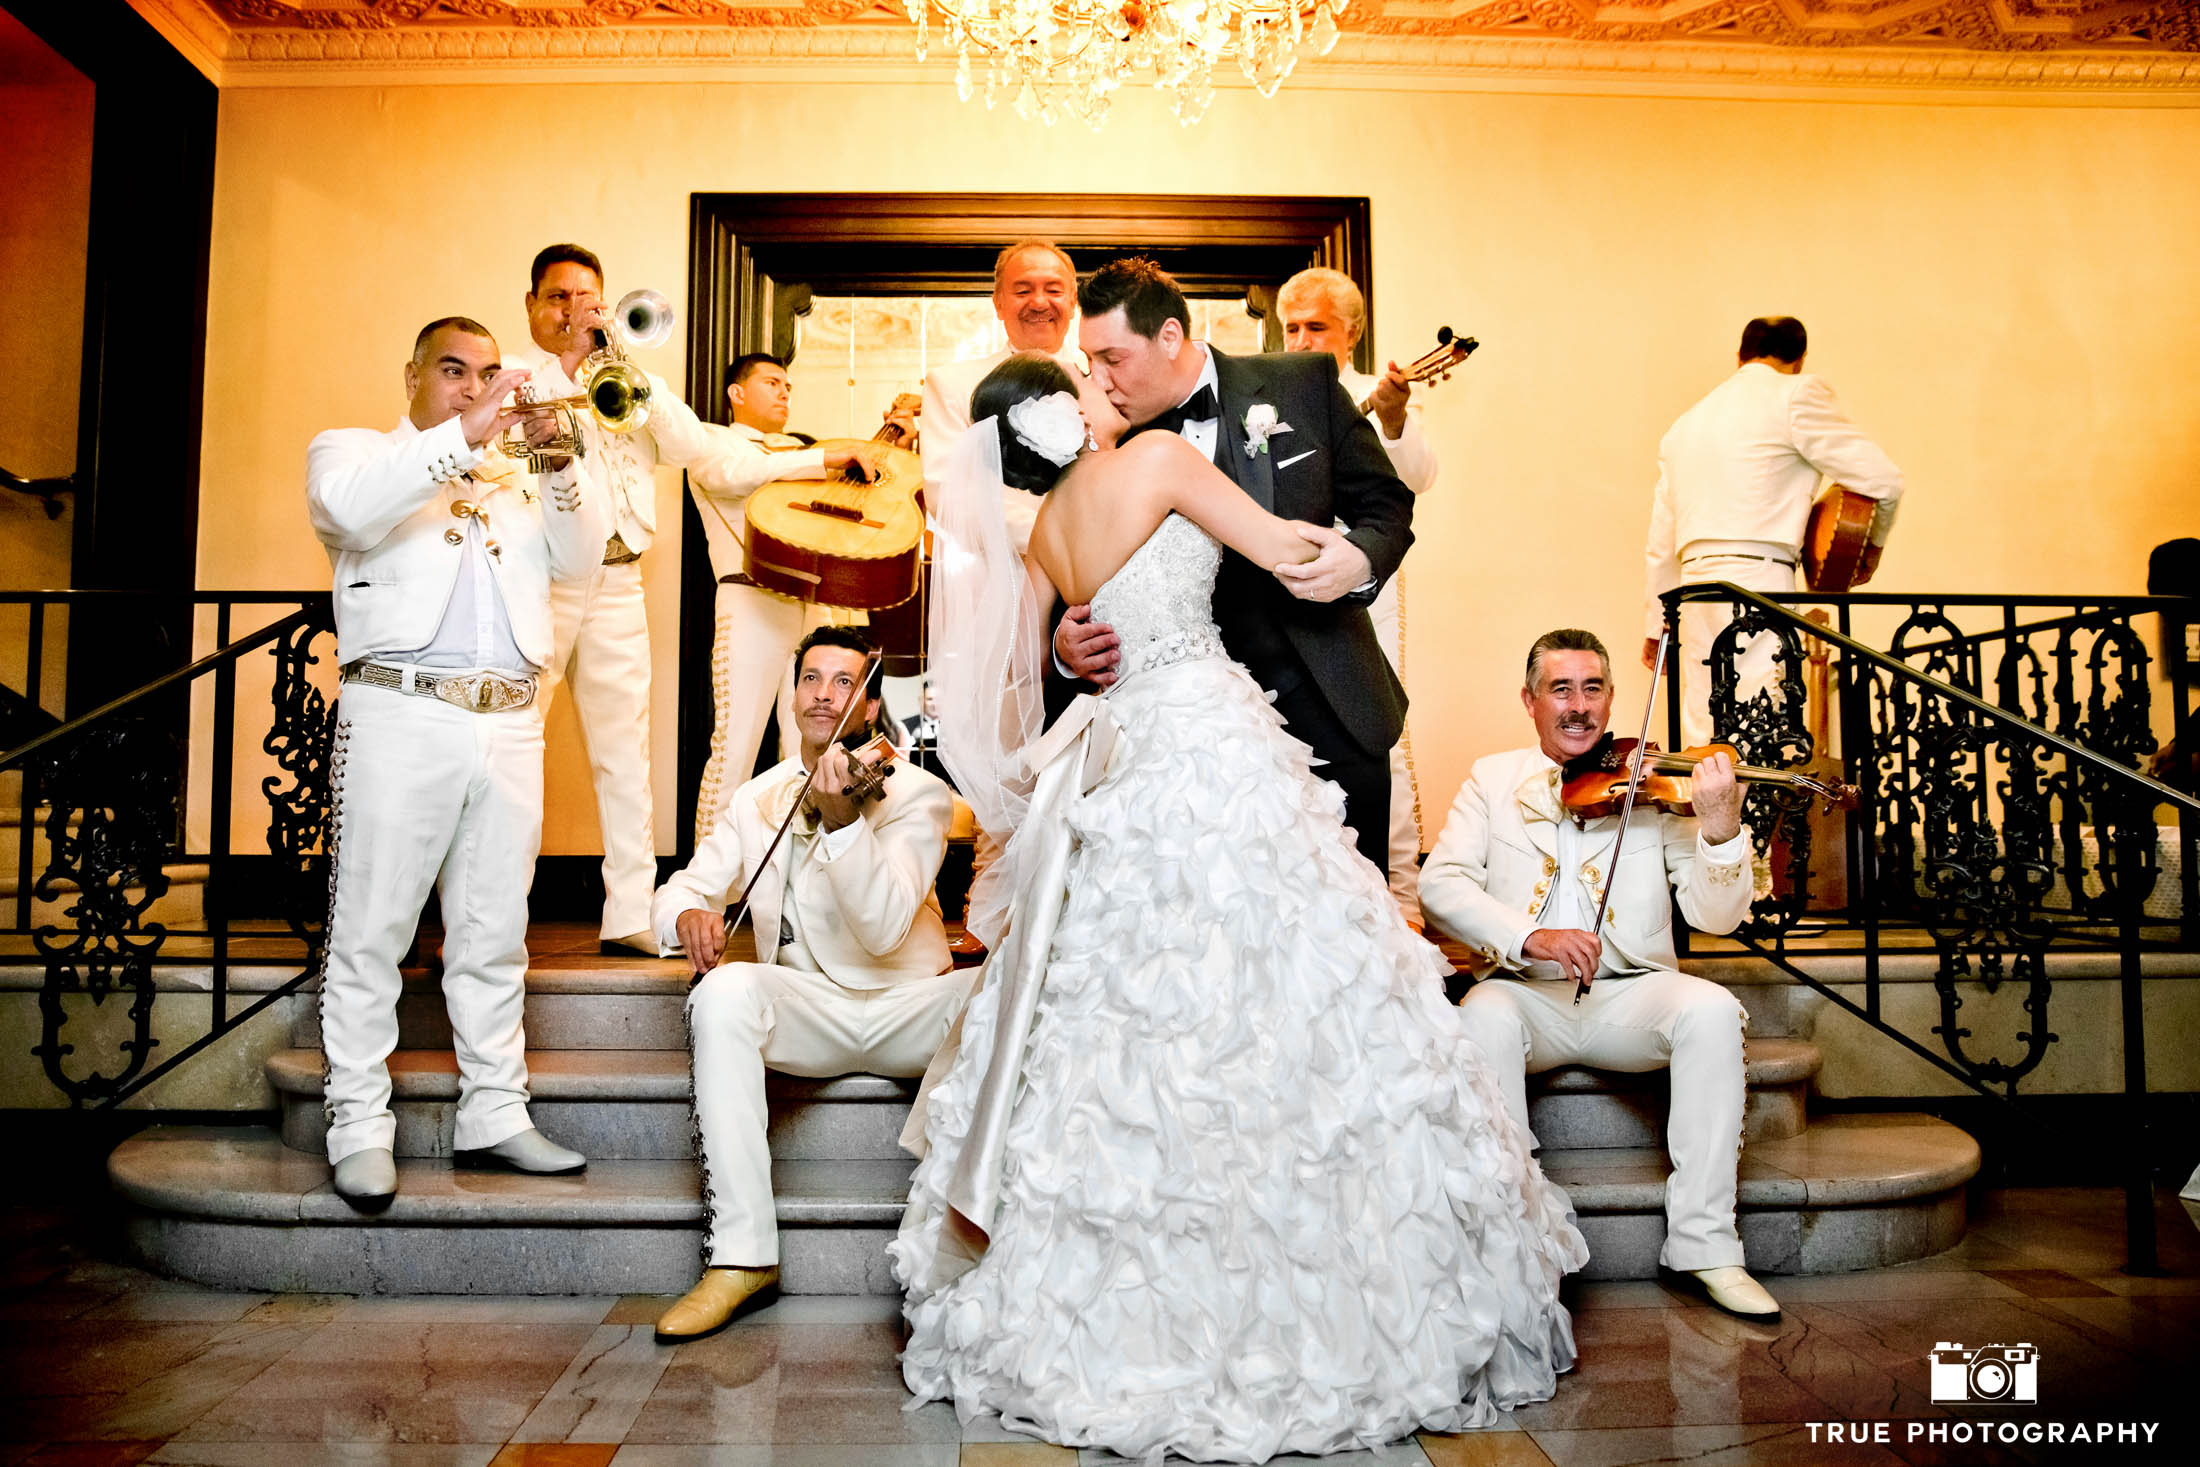 Bride and Groom kiss as mariachi band plays behind them